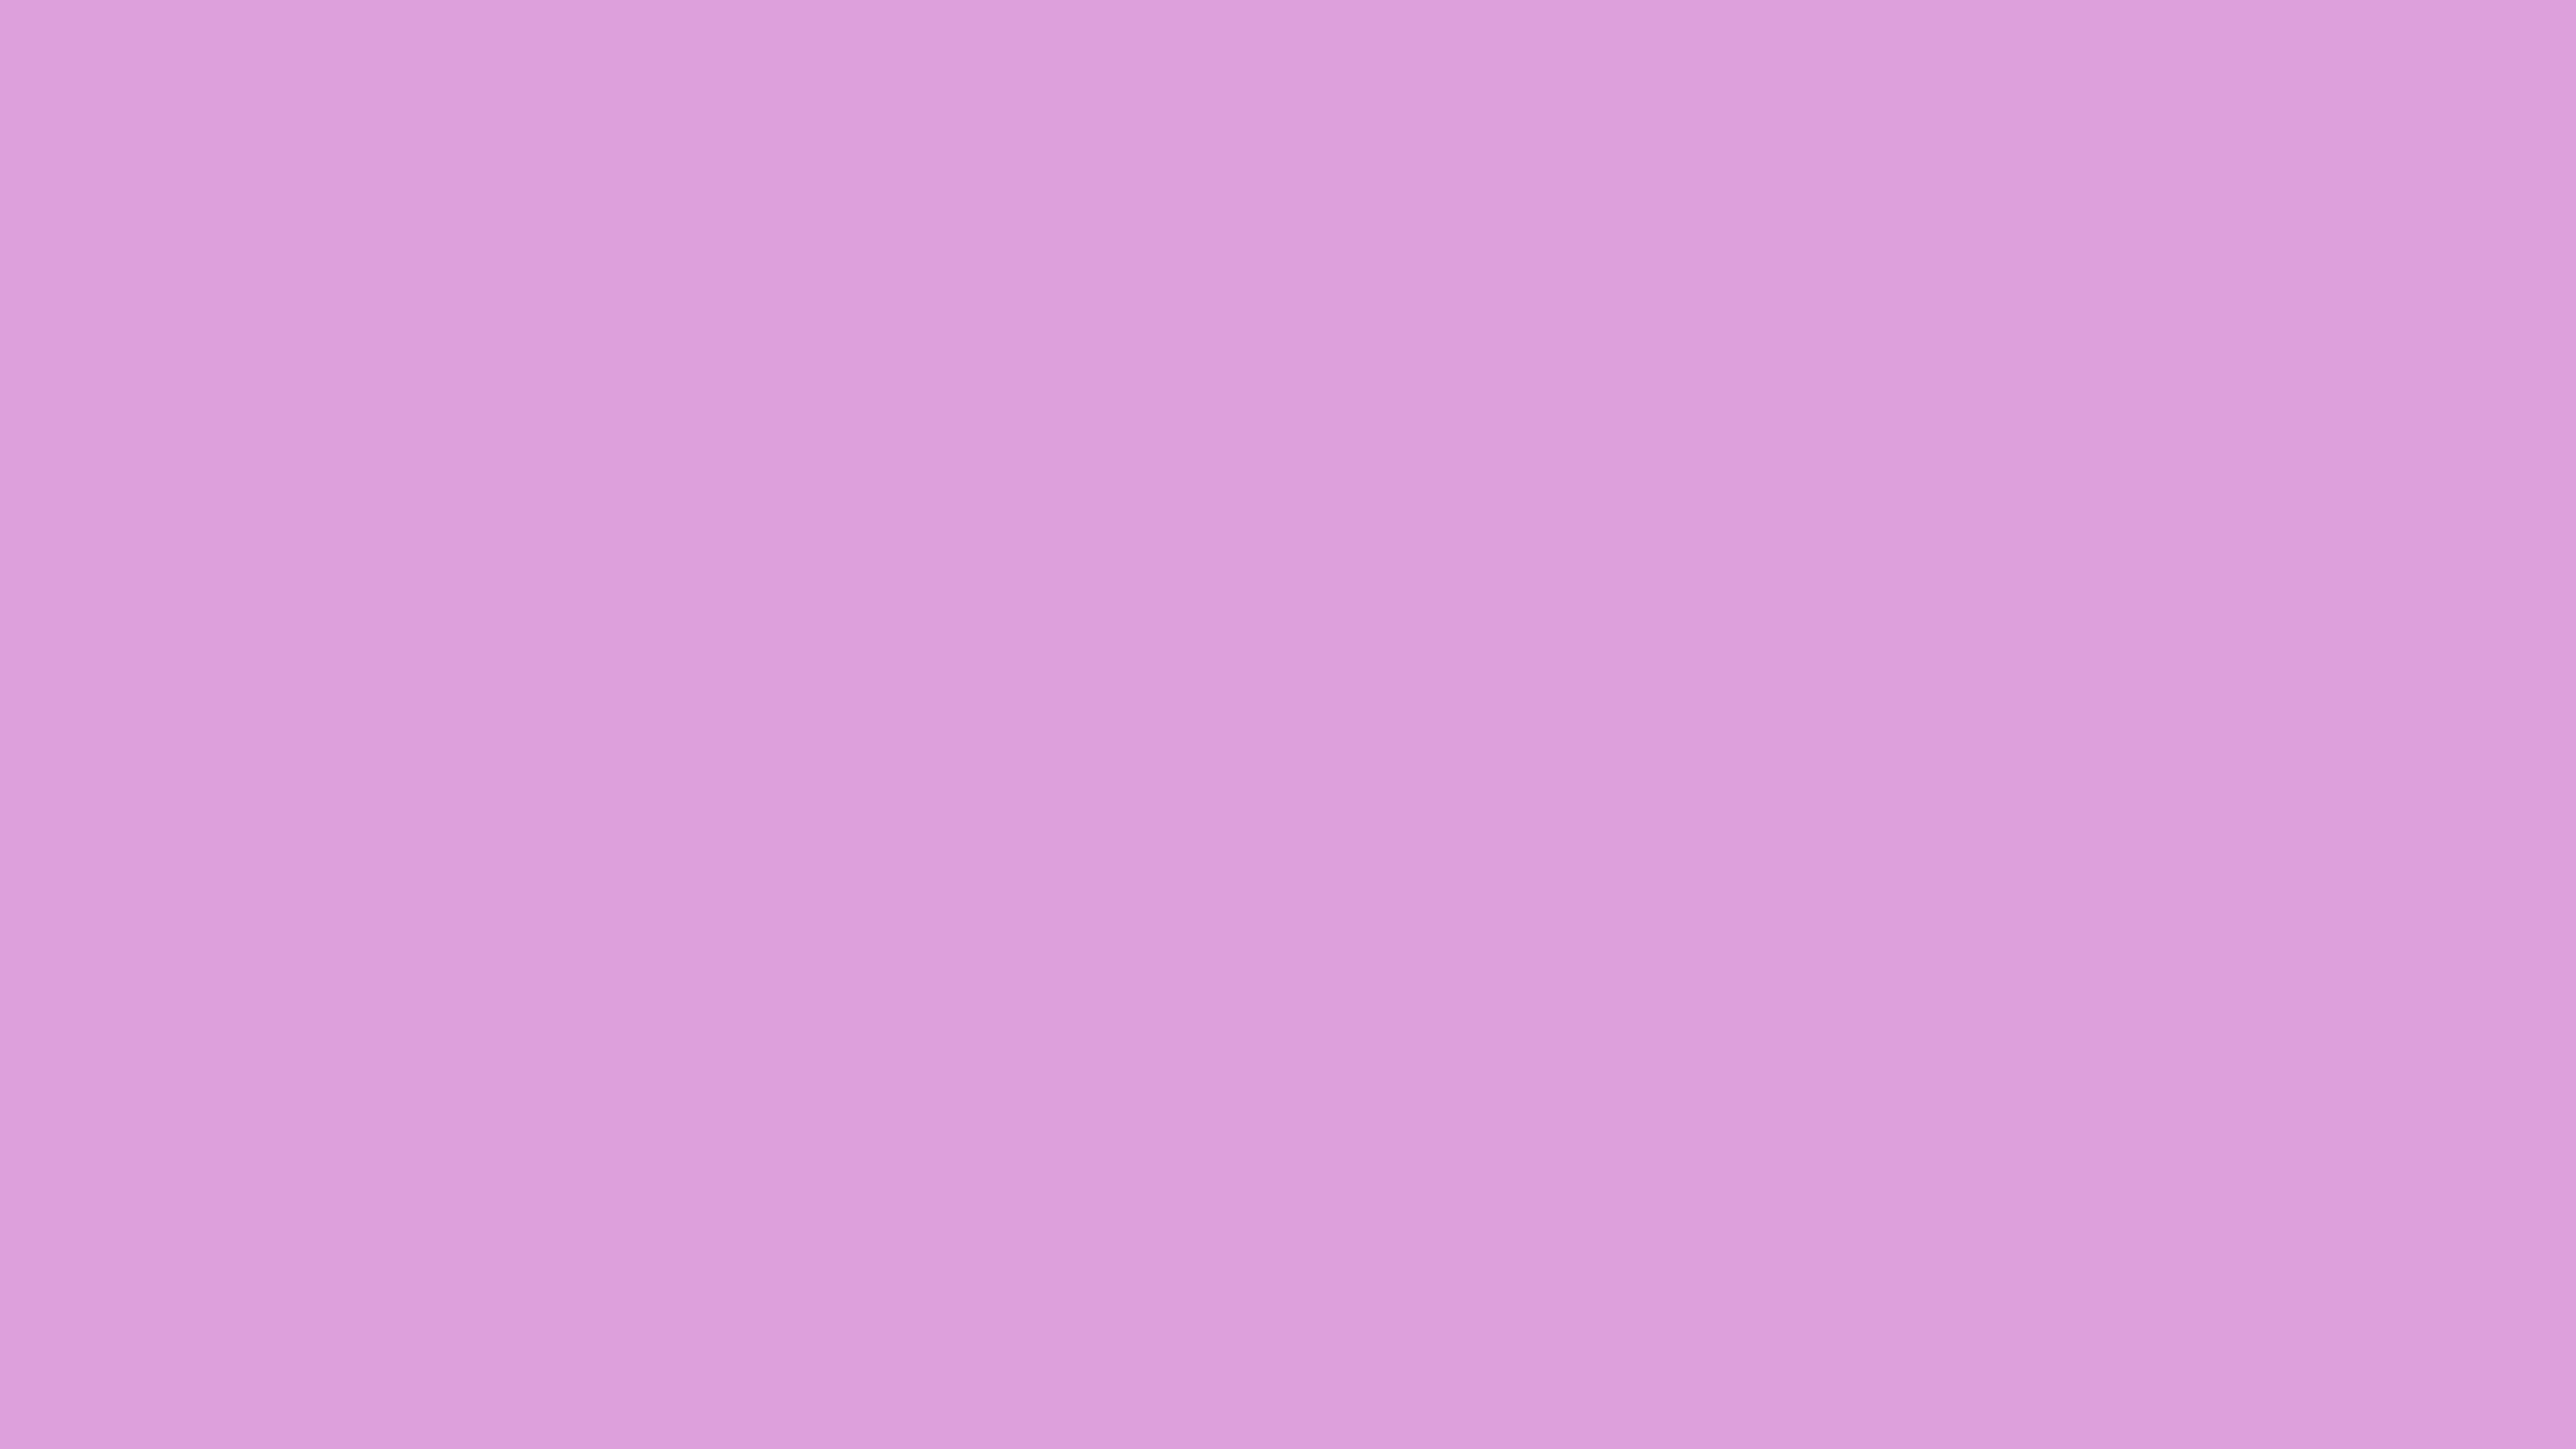 7680x4320 Pale Plum Solid Color Background